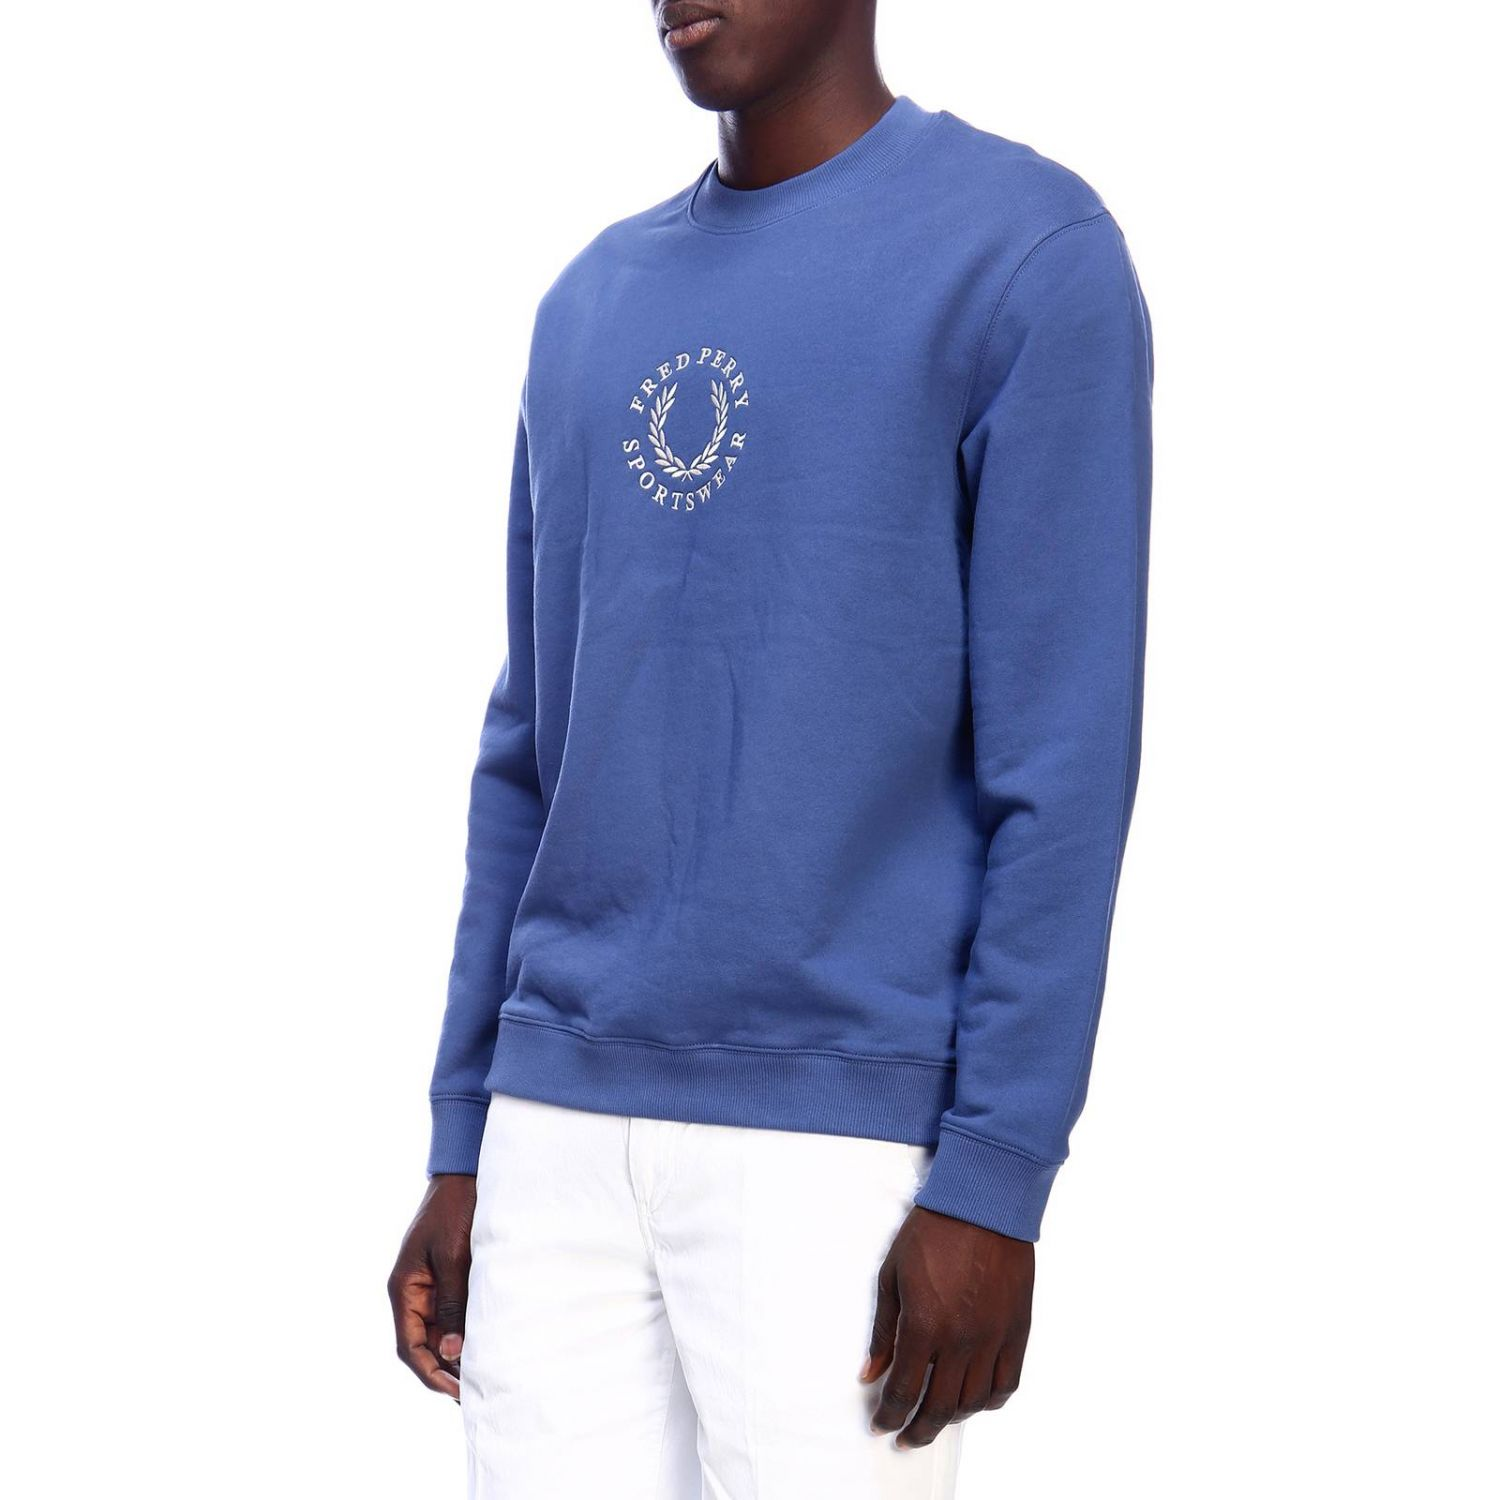 Jersey hombre Fred Perry azul claro 2